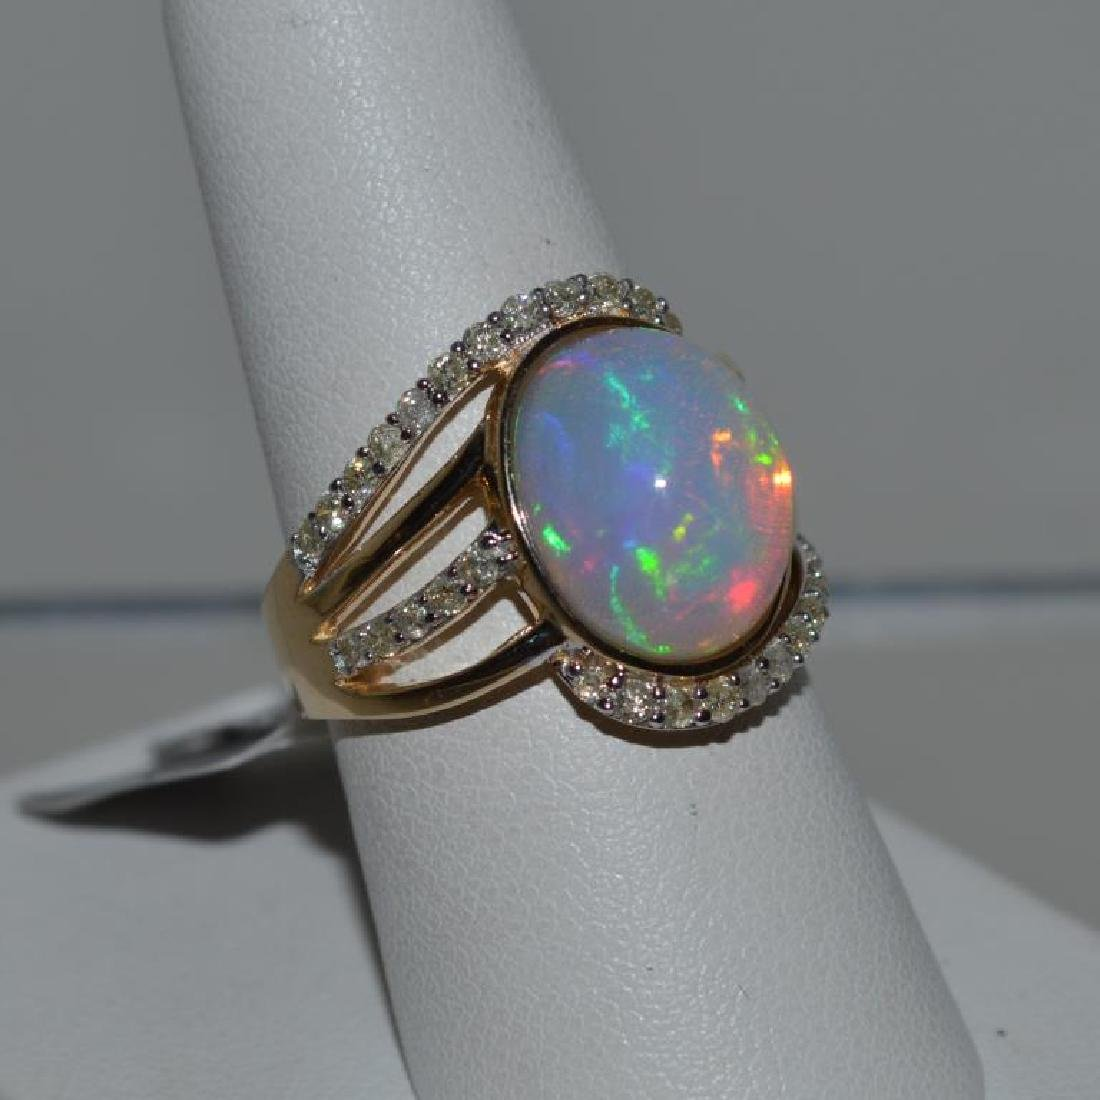 14kt yellow gold opal and diamond ring - 3